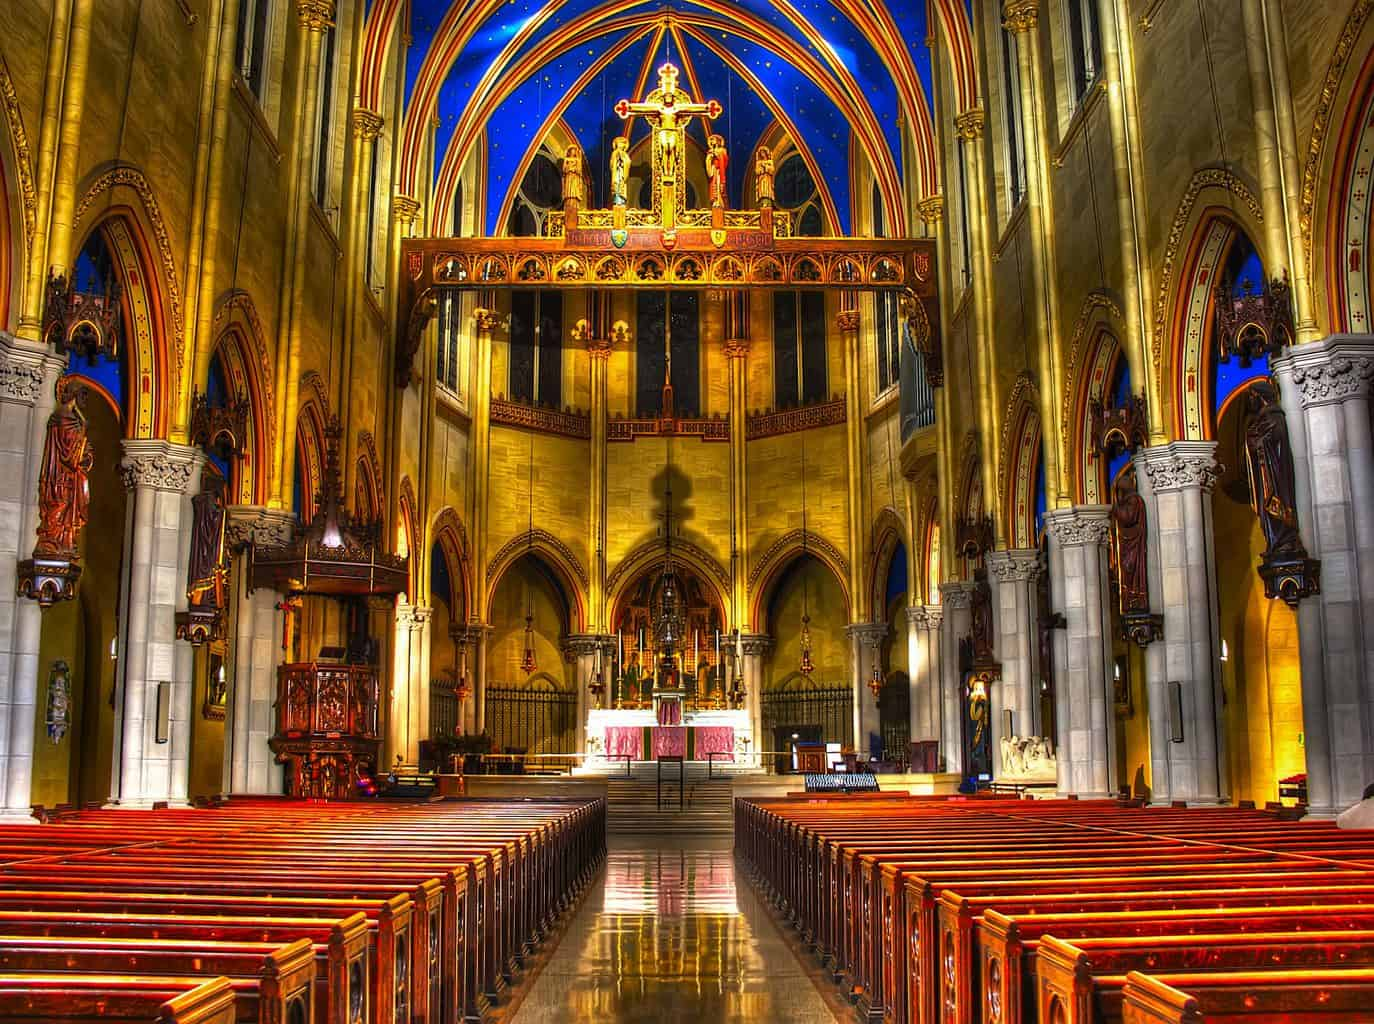 The expansive, blue, and gold interior of St. Mary the Virgin Church near Times Square, New York City (image sourced from Flickr.com).